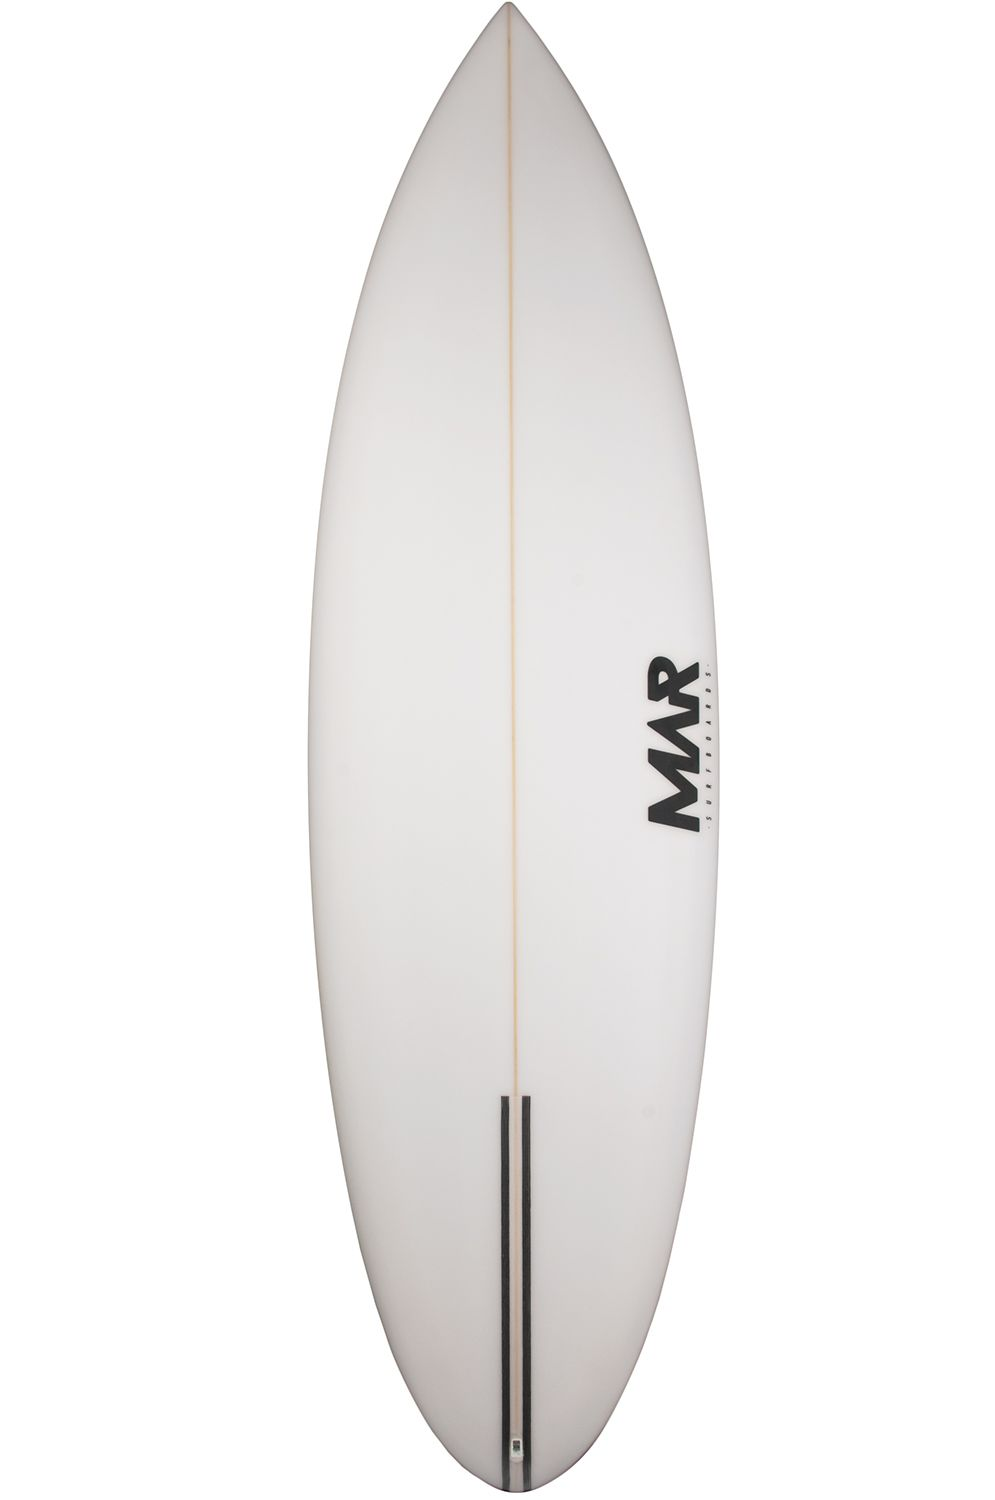 Mar Surf Board 6'1 PARROT PU Round Tail - White FCS II Multisystem 6ft1